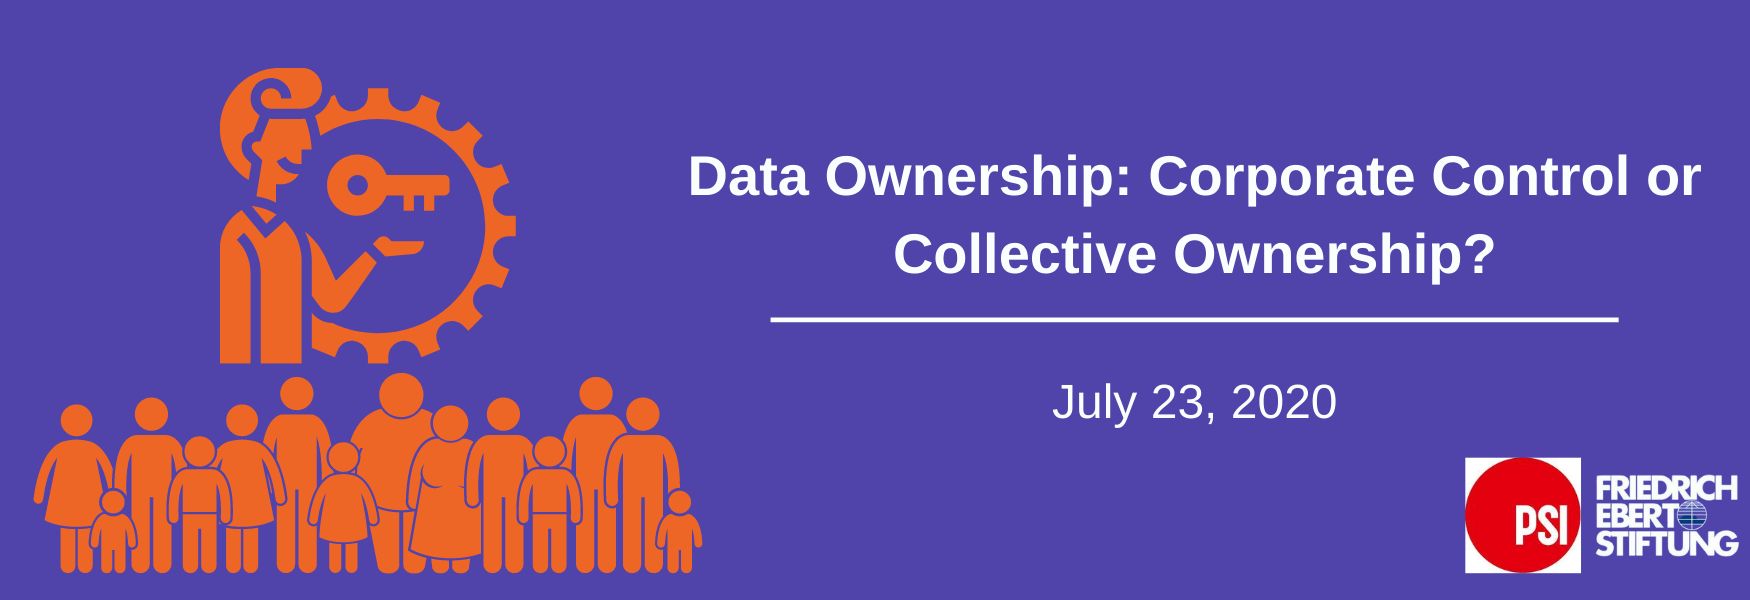 Data Ownership: Corporate Control or Collective Ownership?